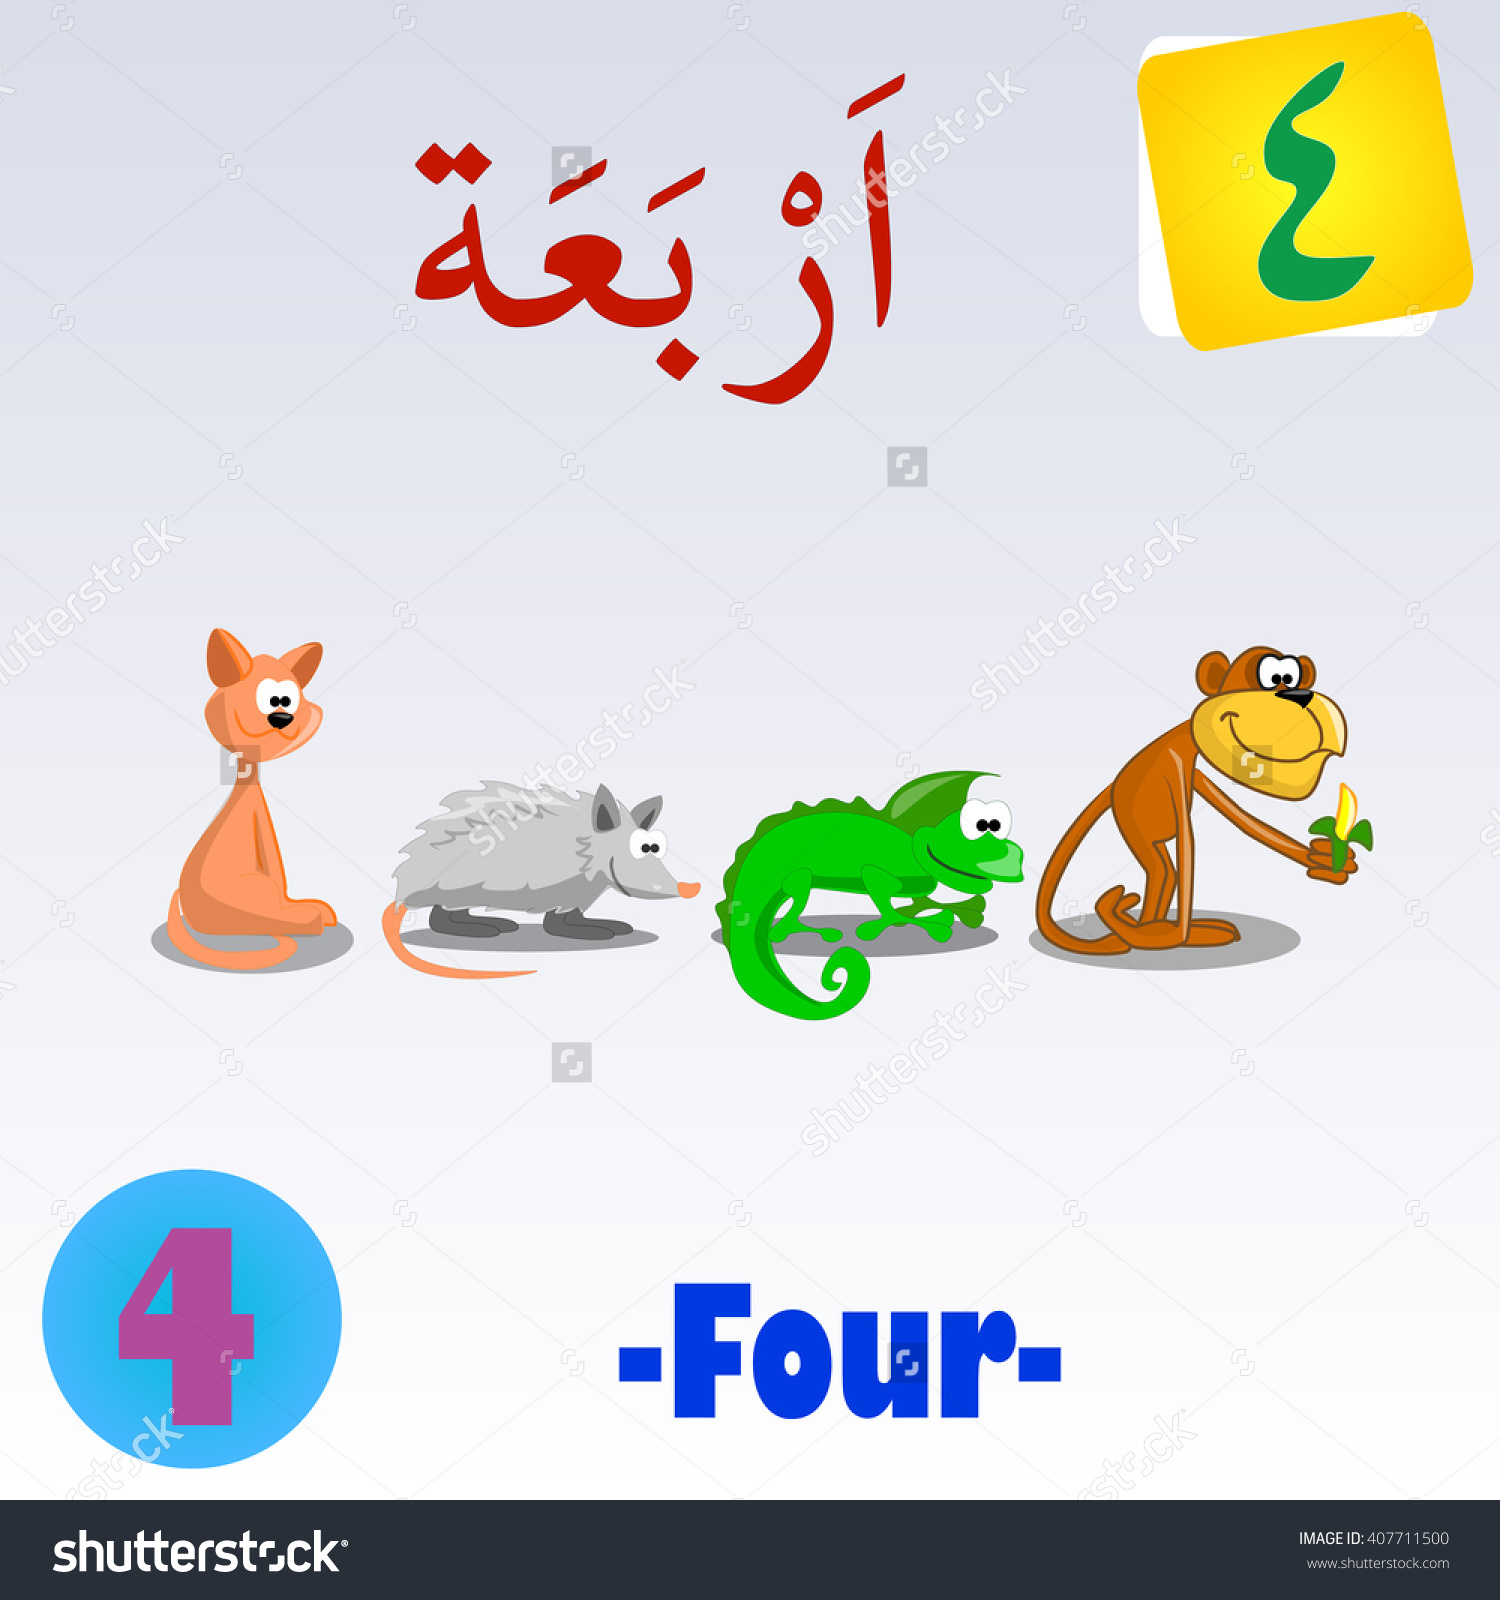 Kids learning arabic clipart clip art royalty free Vector Arabic Number Animal Illustration Kids Stock Vector ... clip art royalty free